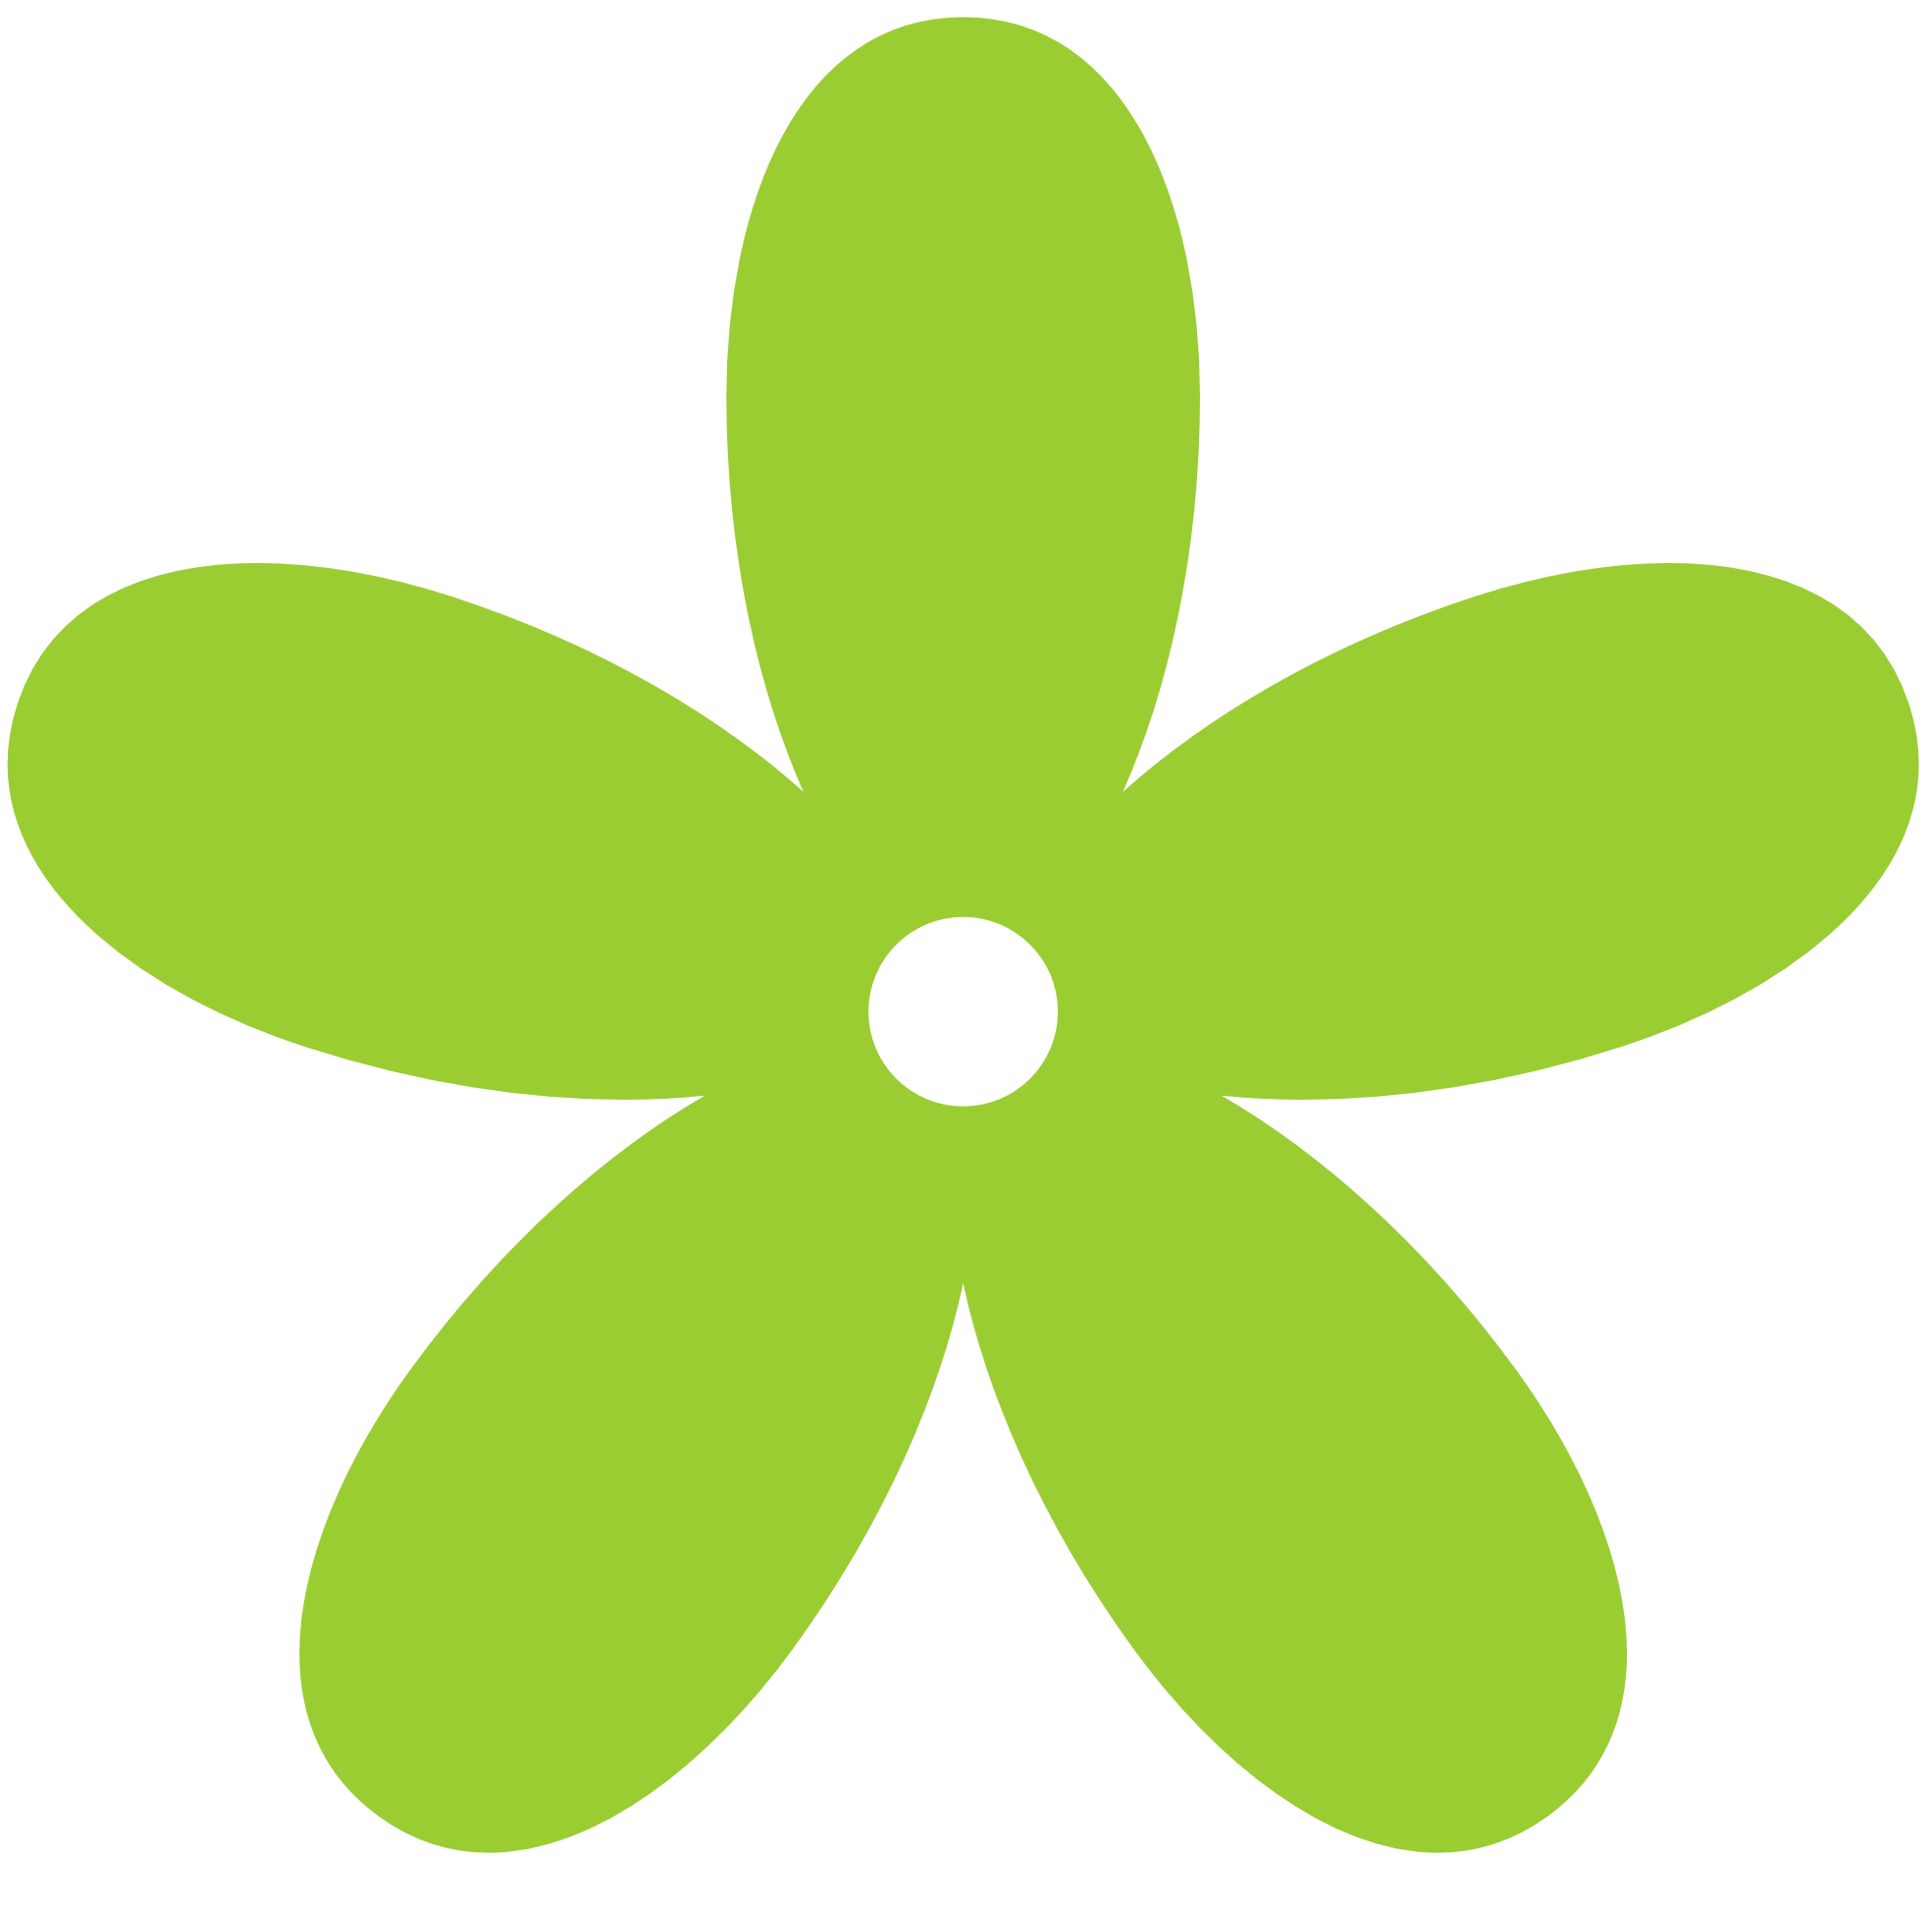 21 Green Flower Clipart Free Cliparts That You Can Download To You